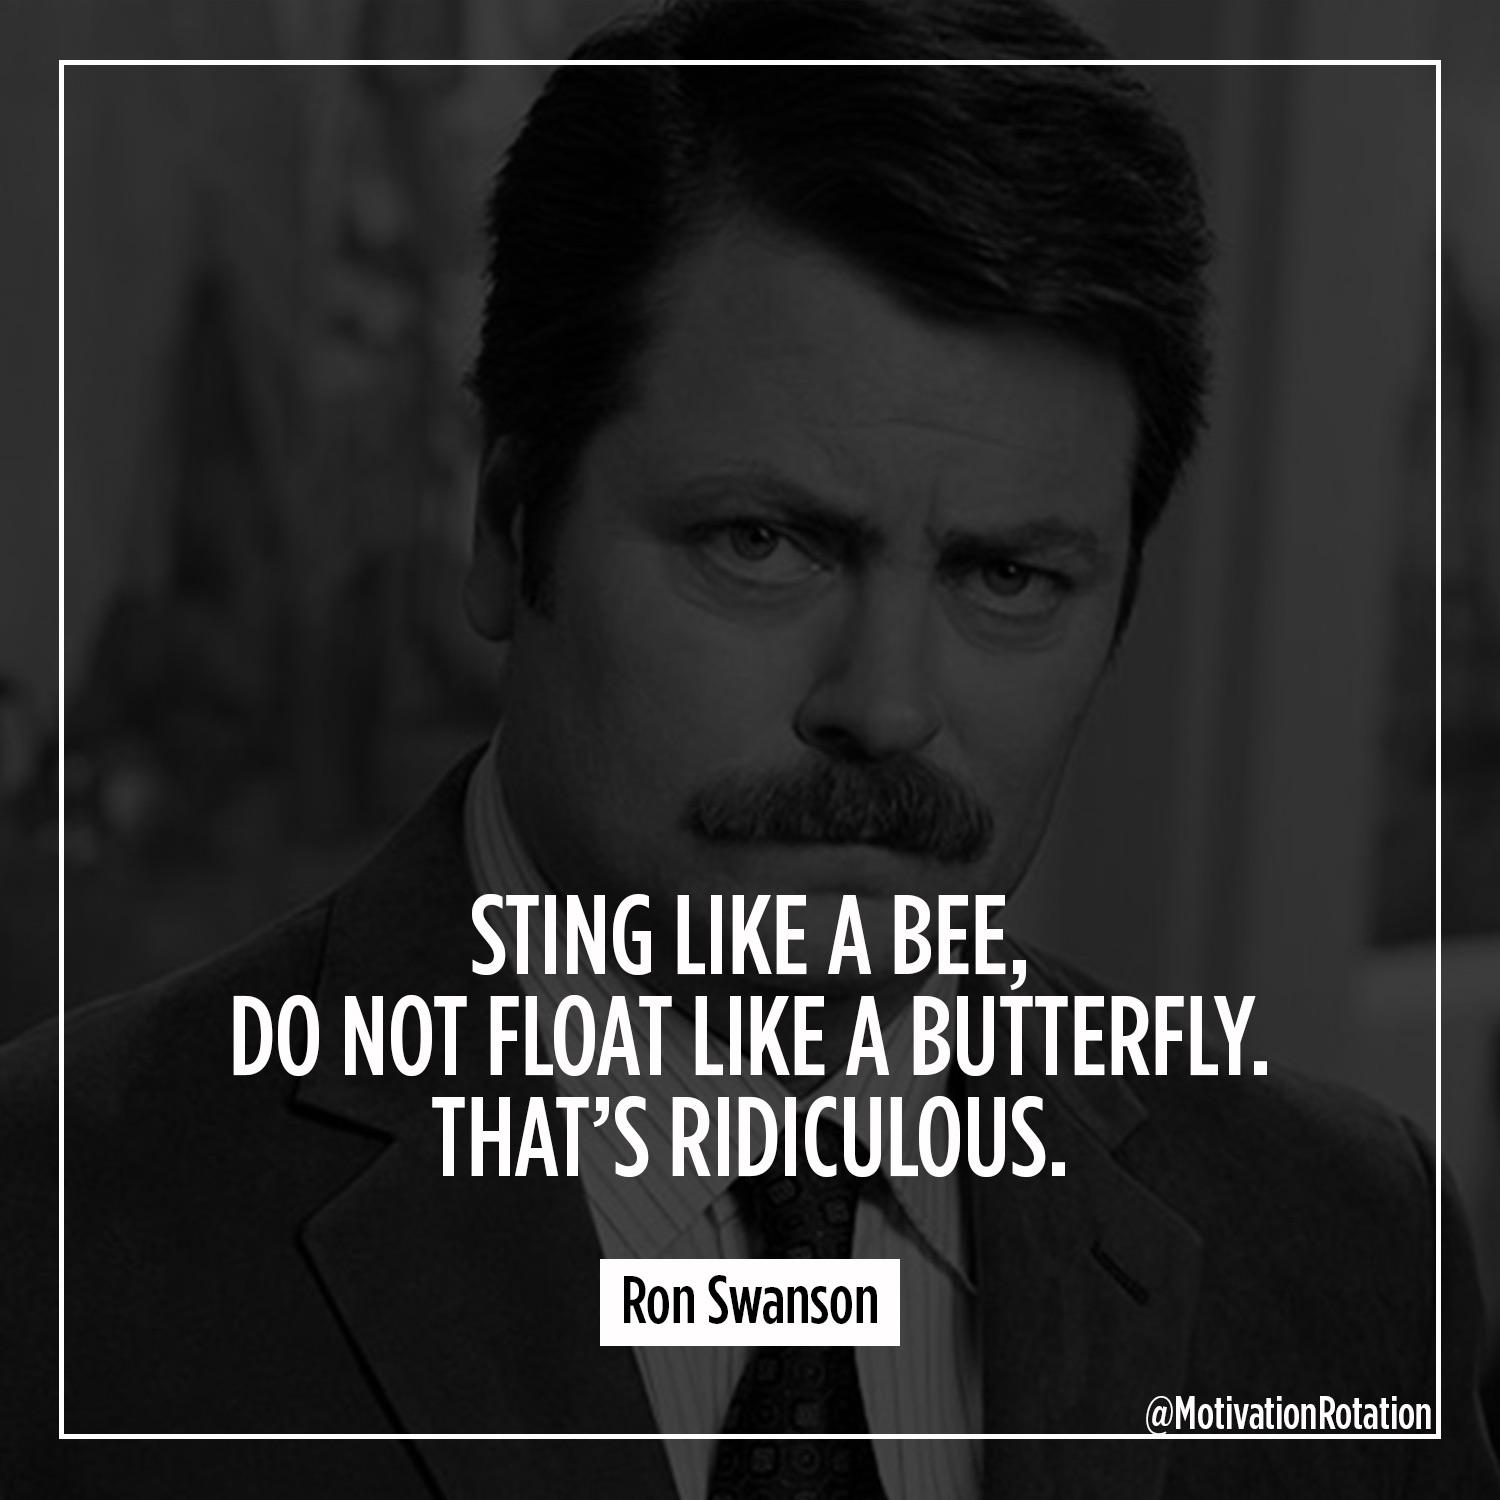 [image] Some motivation from Ron Swanson.